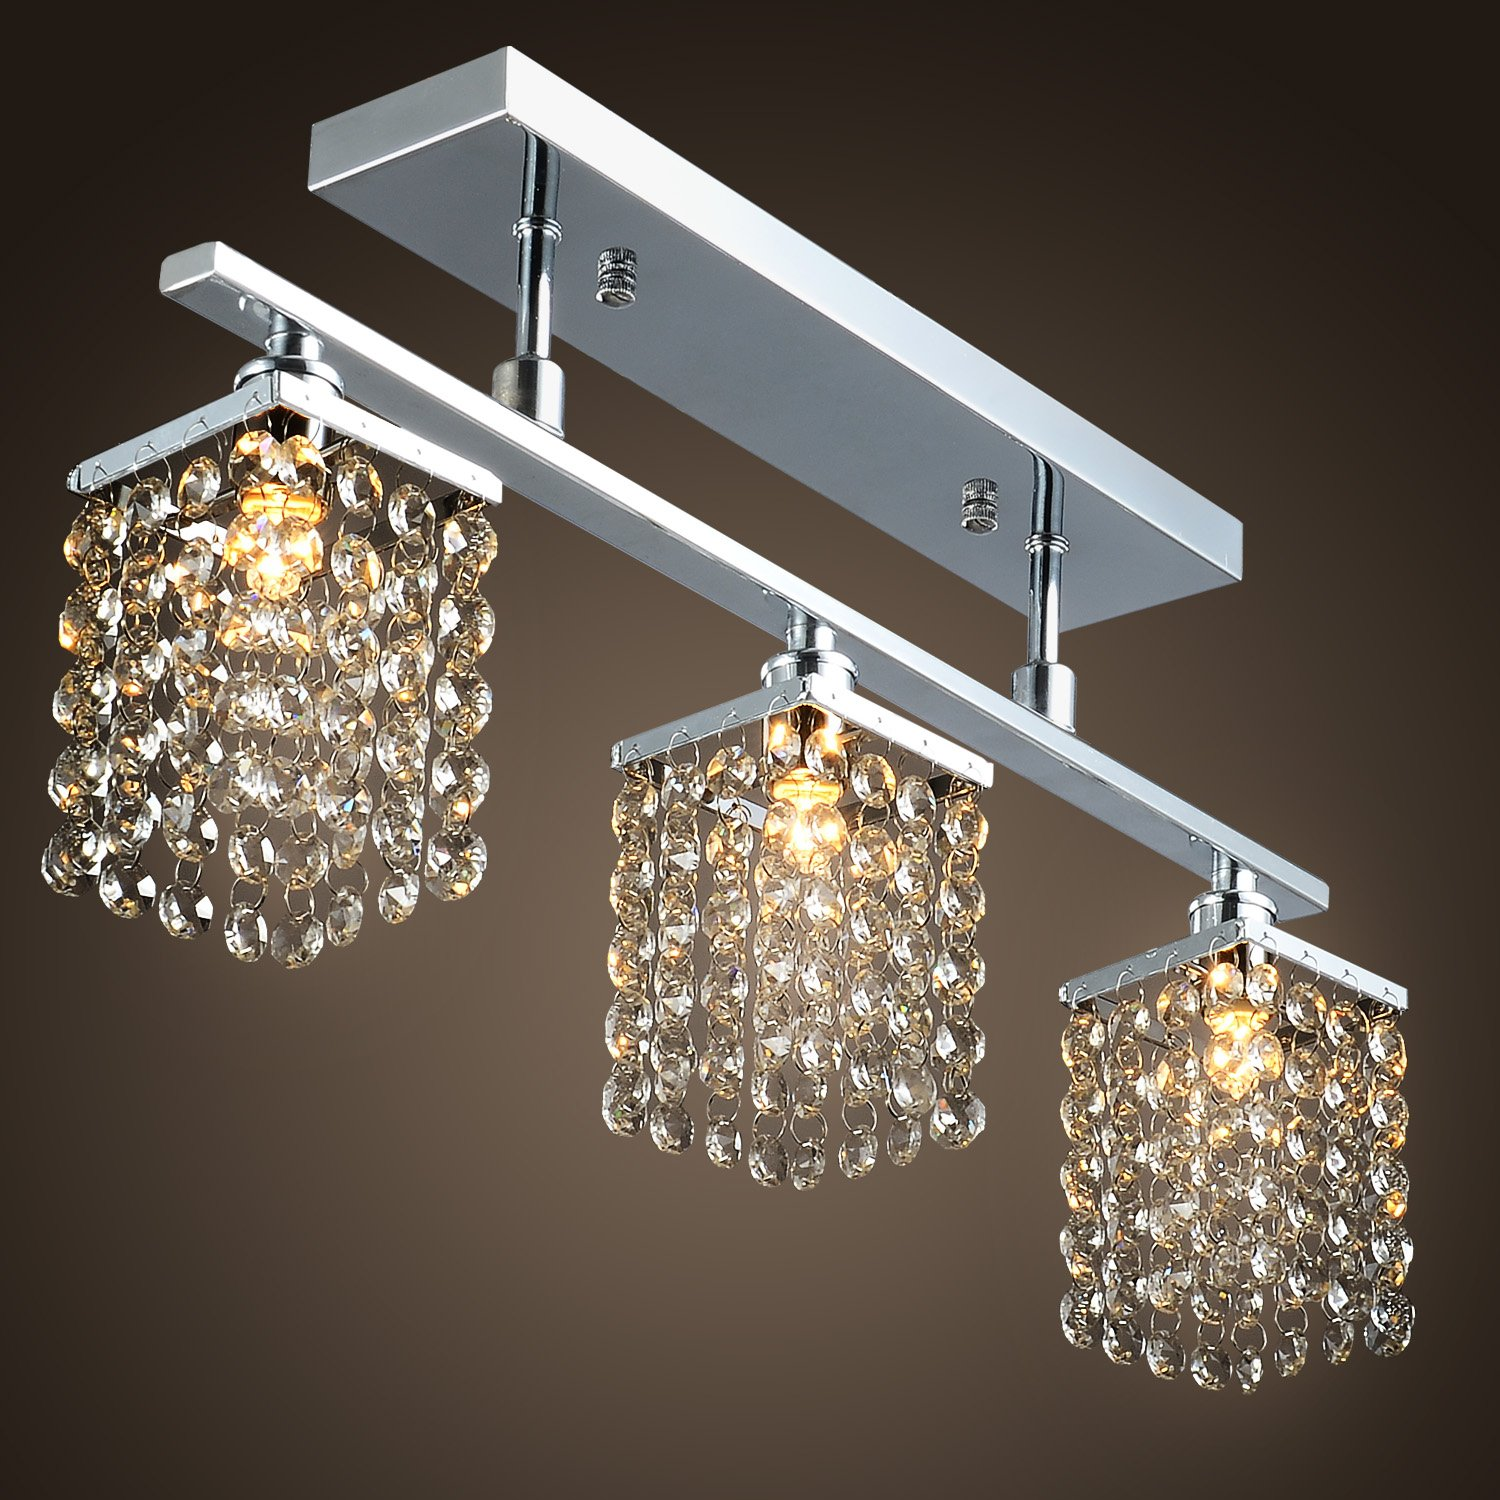 Ideal LightInTheBox Chandelier with lights in Crystal Flush Mount Modern Ceiling Light Fixture for Entry